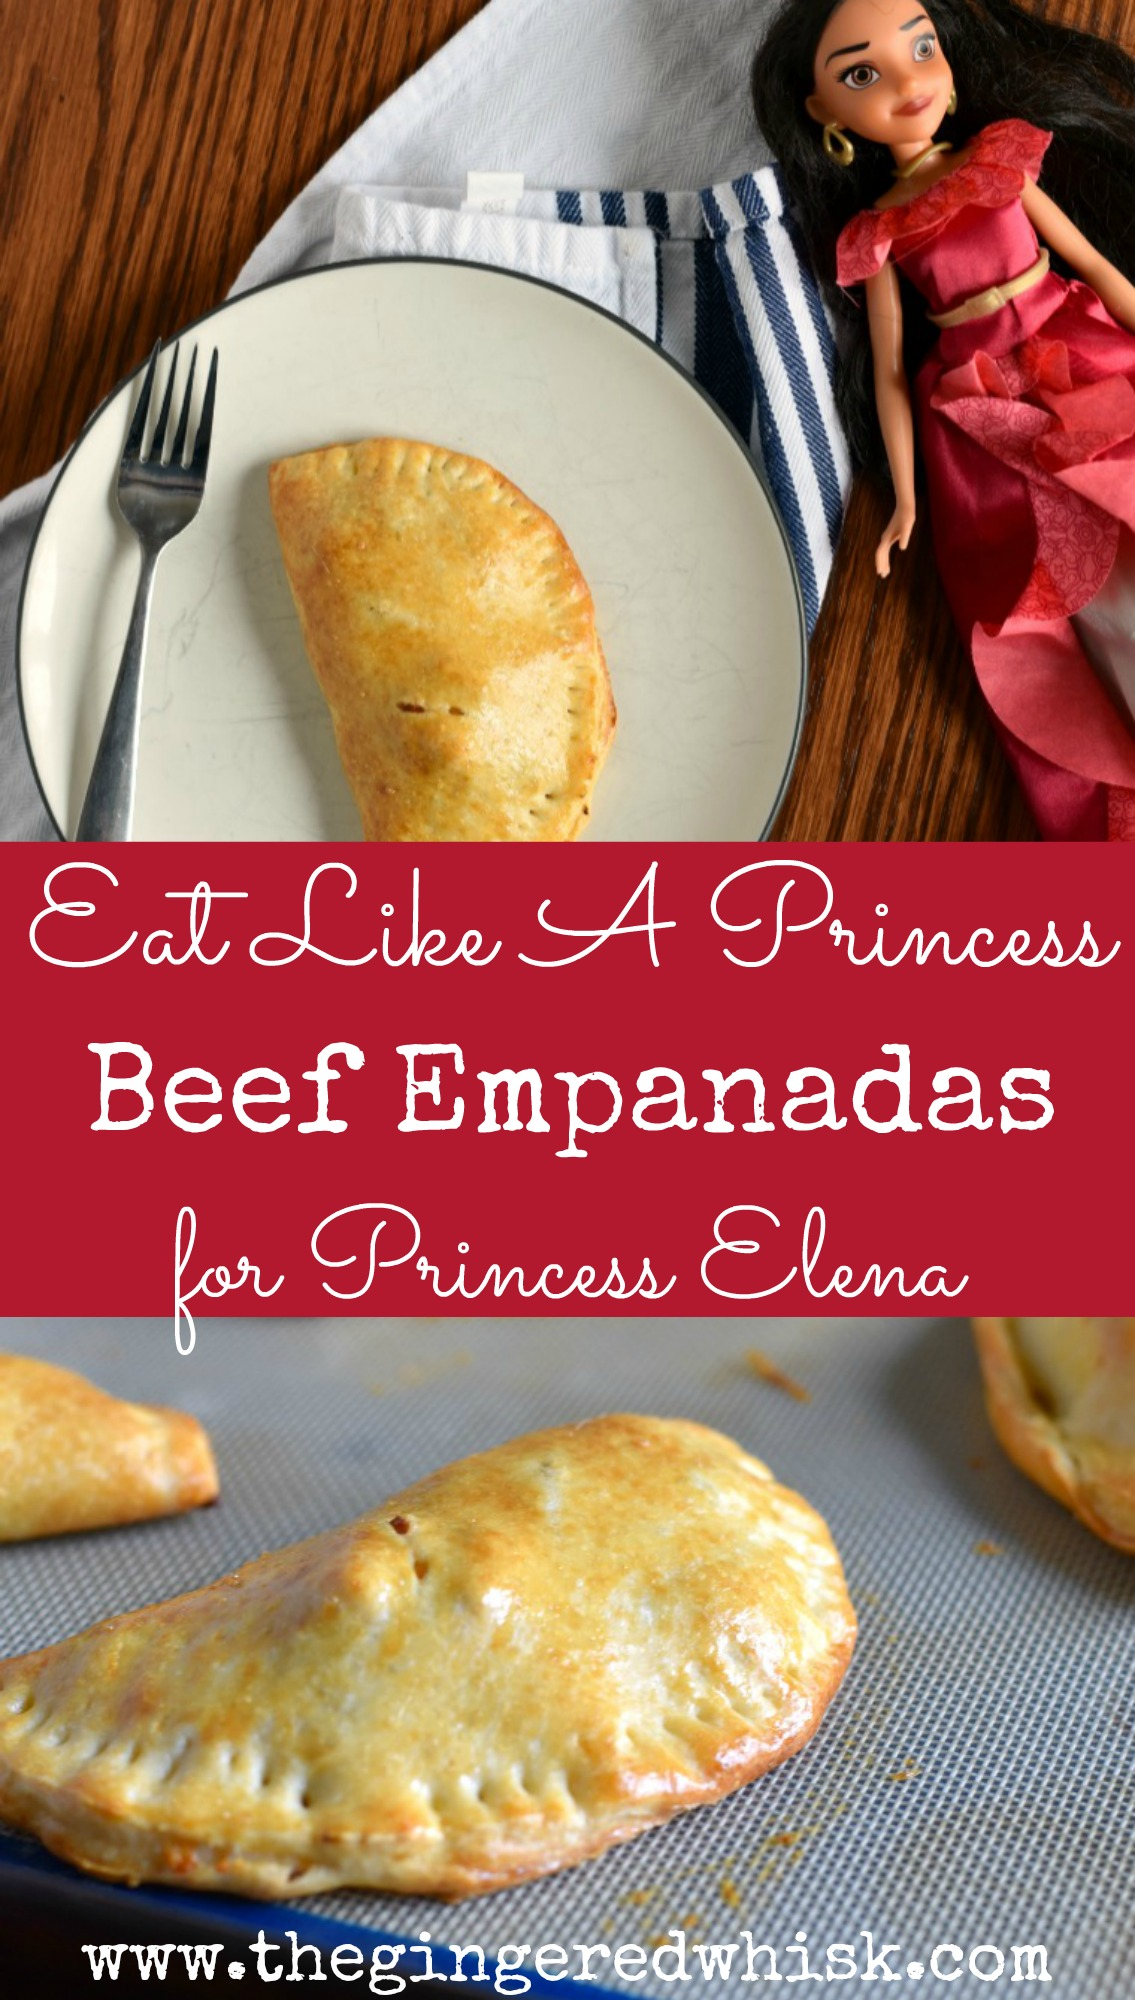 Eat Like A Princess - Beef Empanadas for Princess Elena